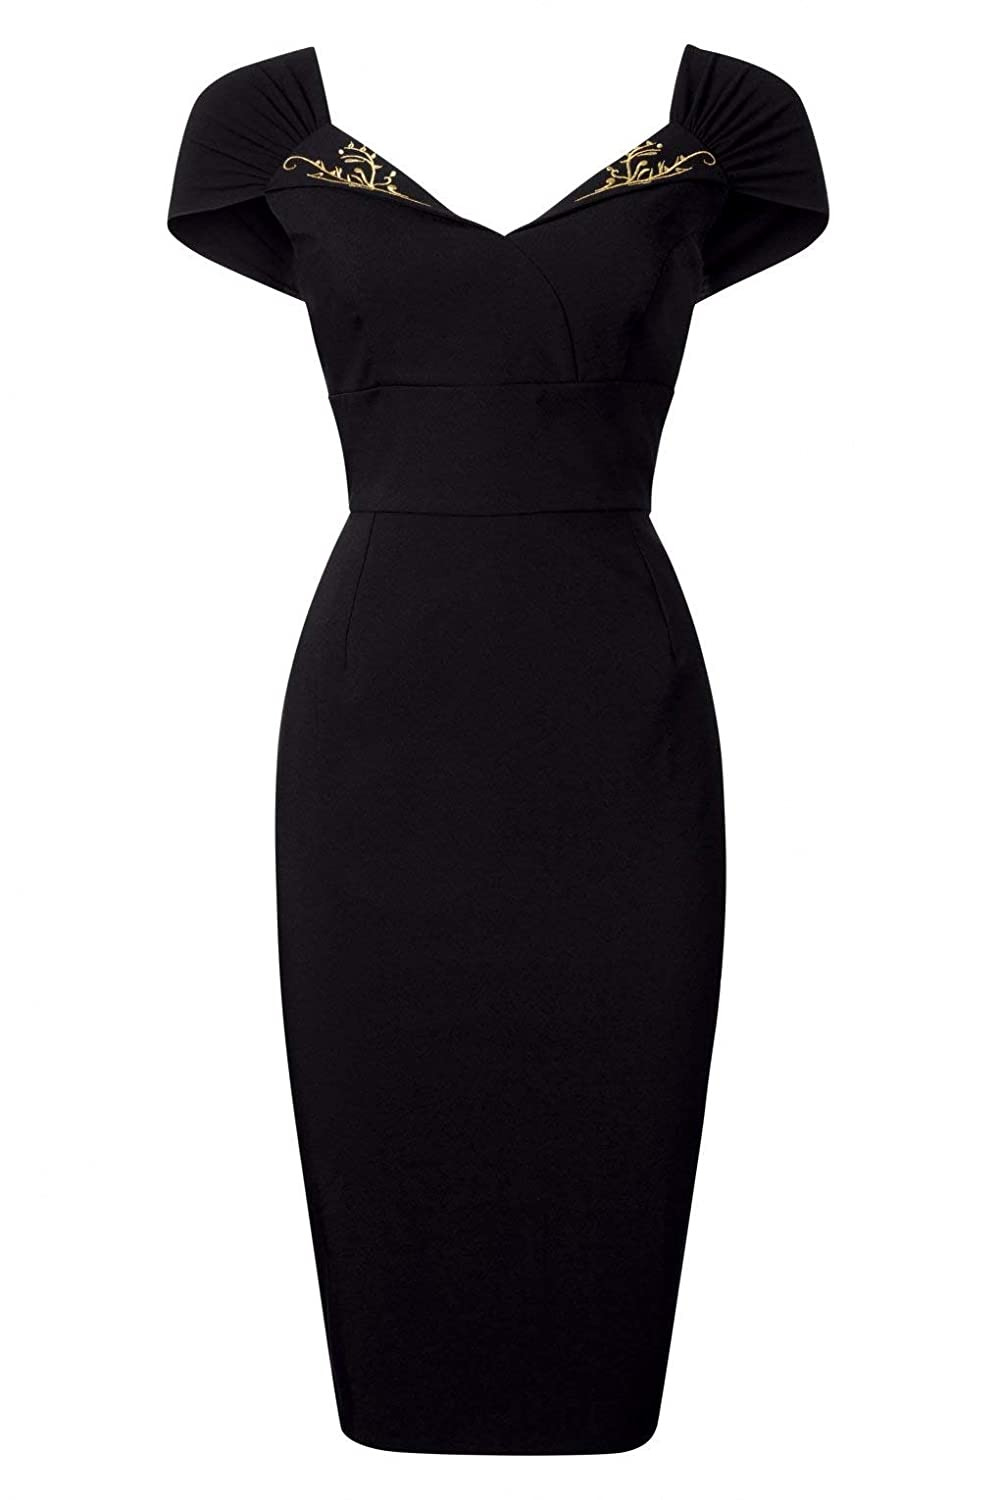 3198a168d92a3 50s Ruby Pencil Dress in Black - Damen 50er Jahre Vintage Retro Kleid -  Schwarz